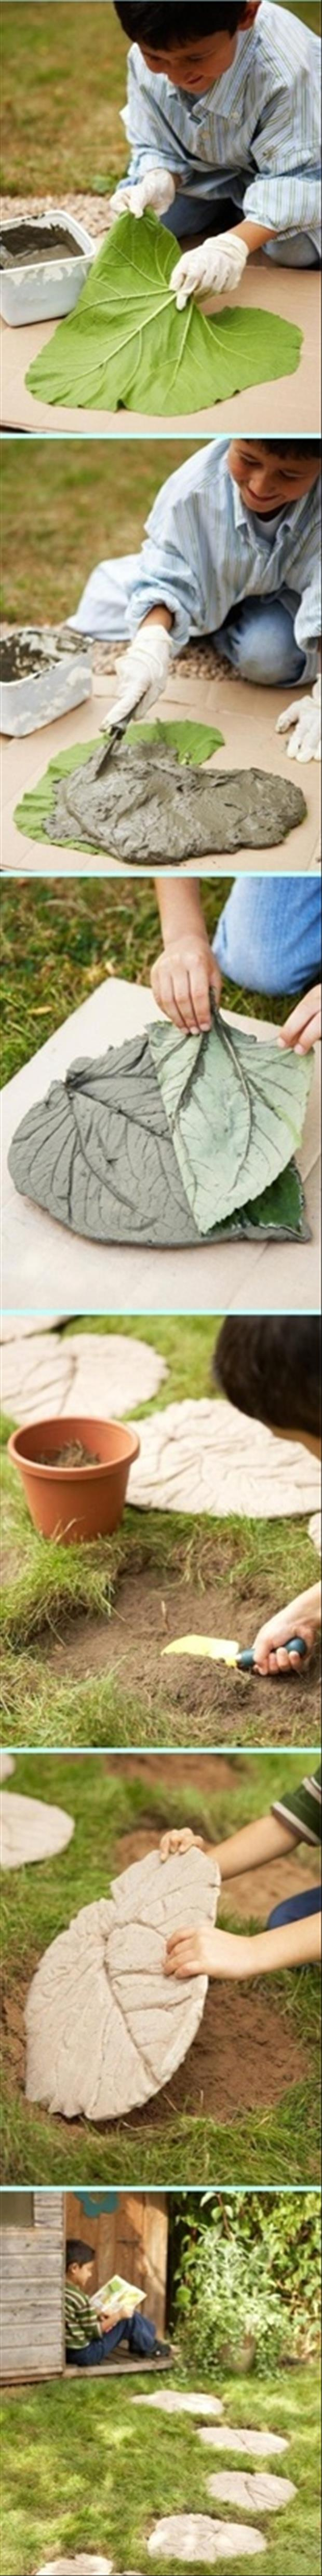 outdoor craft ideas, walking path